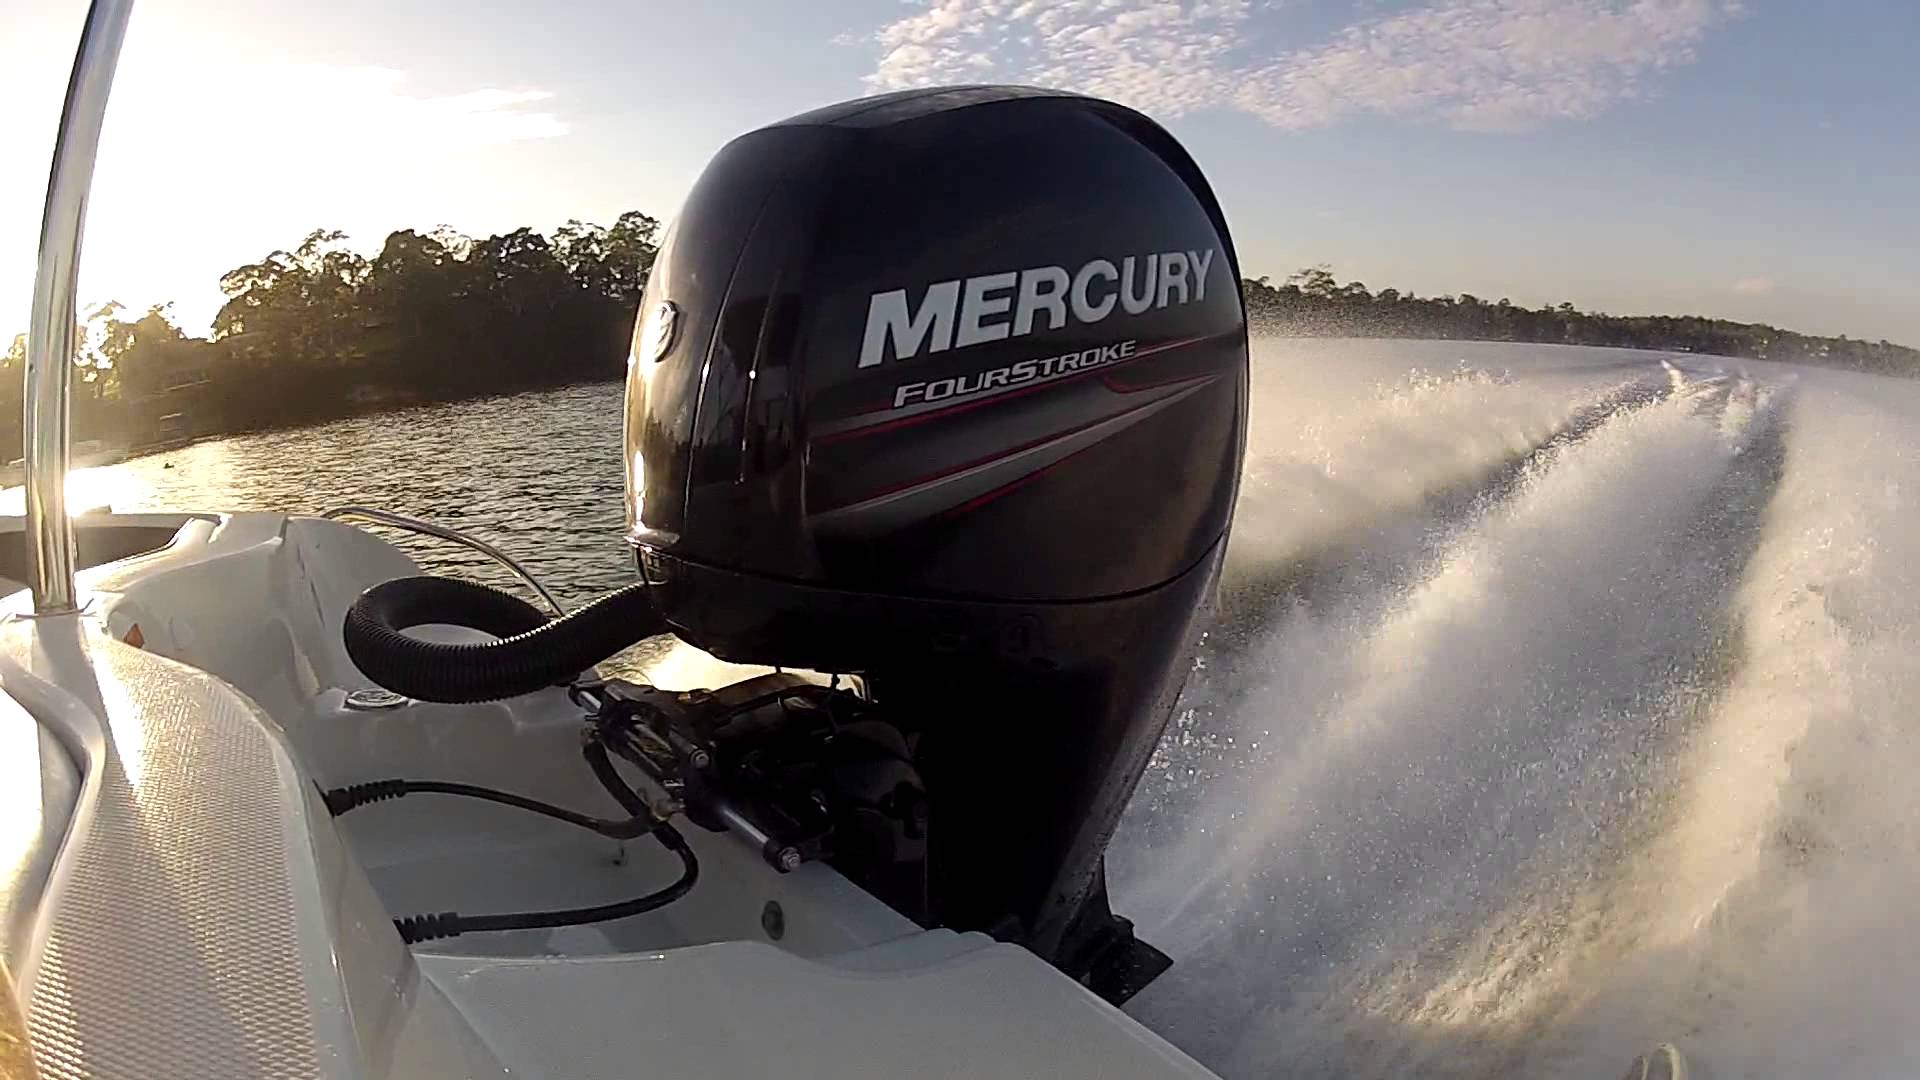 Mercury outboard engine won t start troubleshooting guide for Outboard motor safety cable